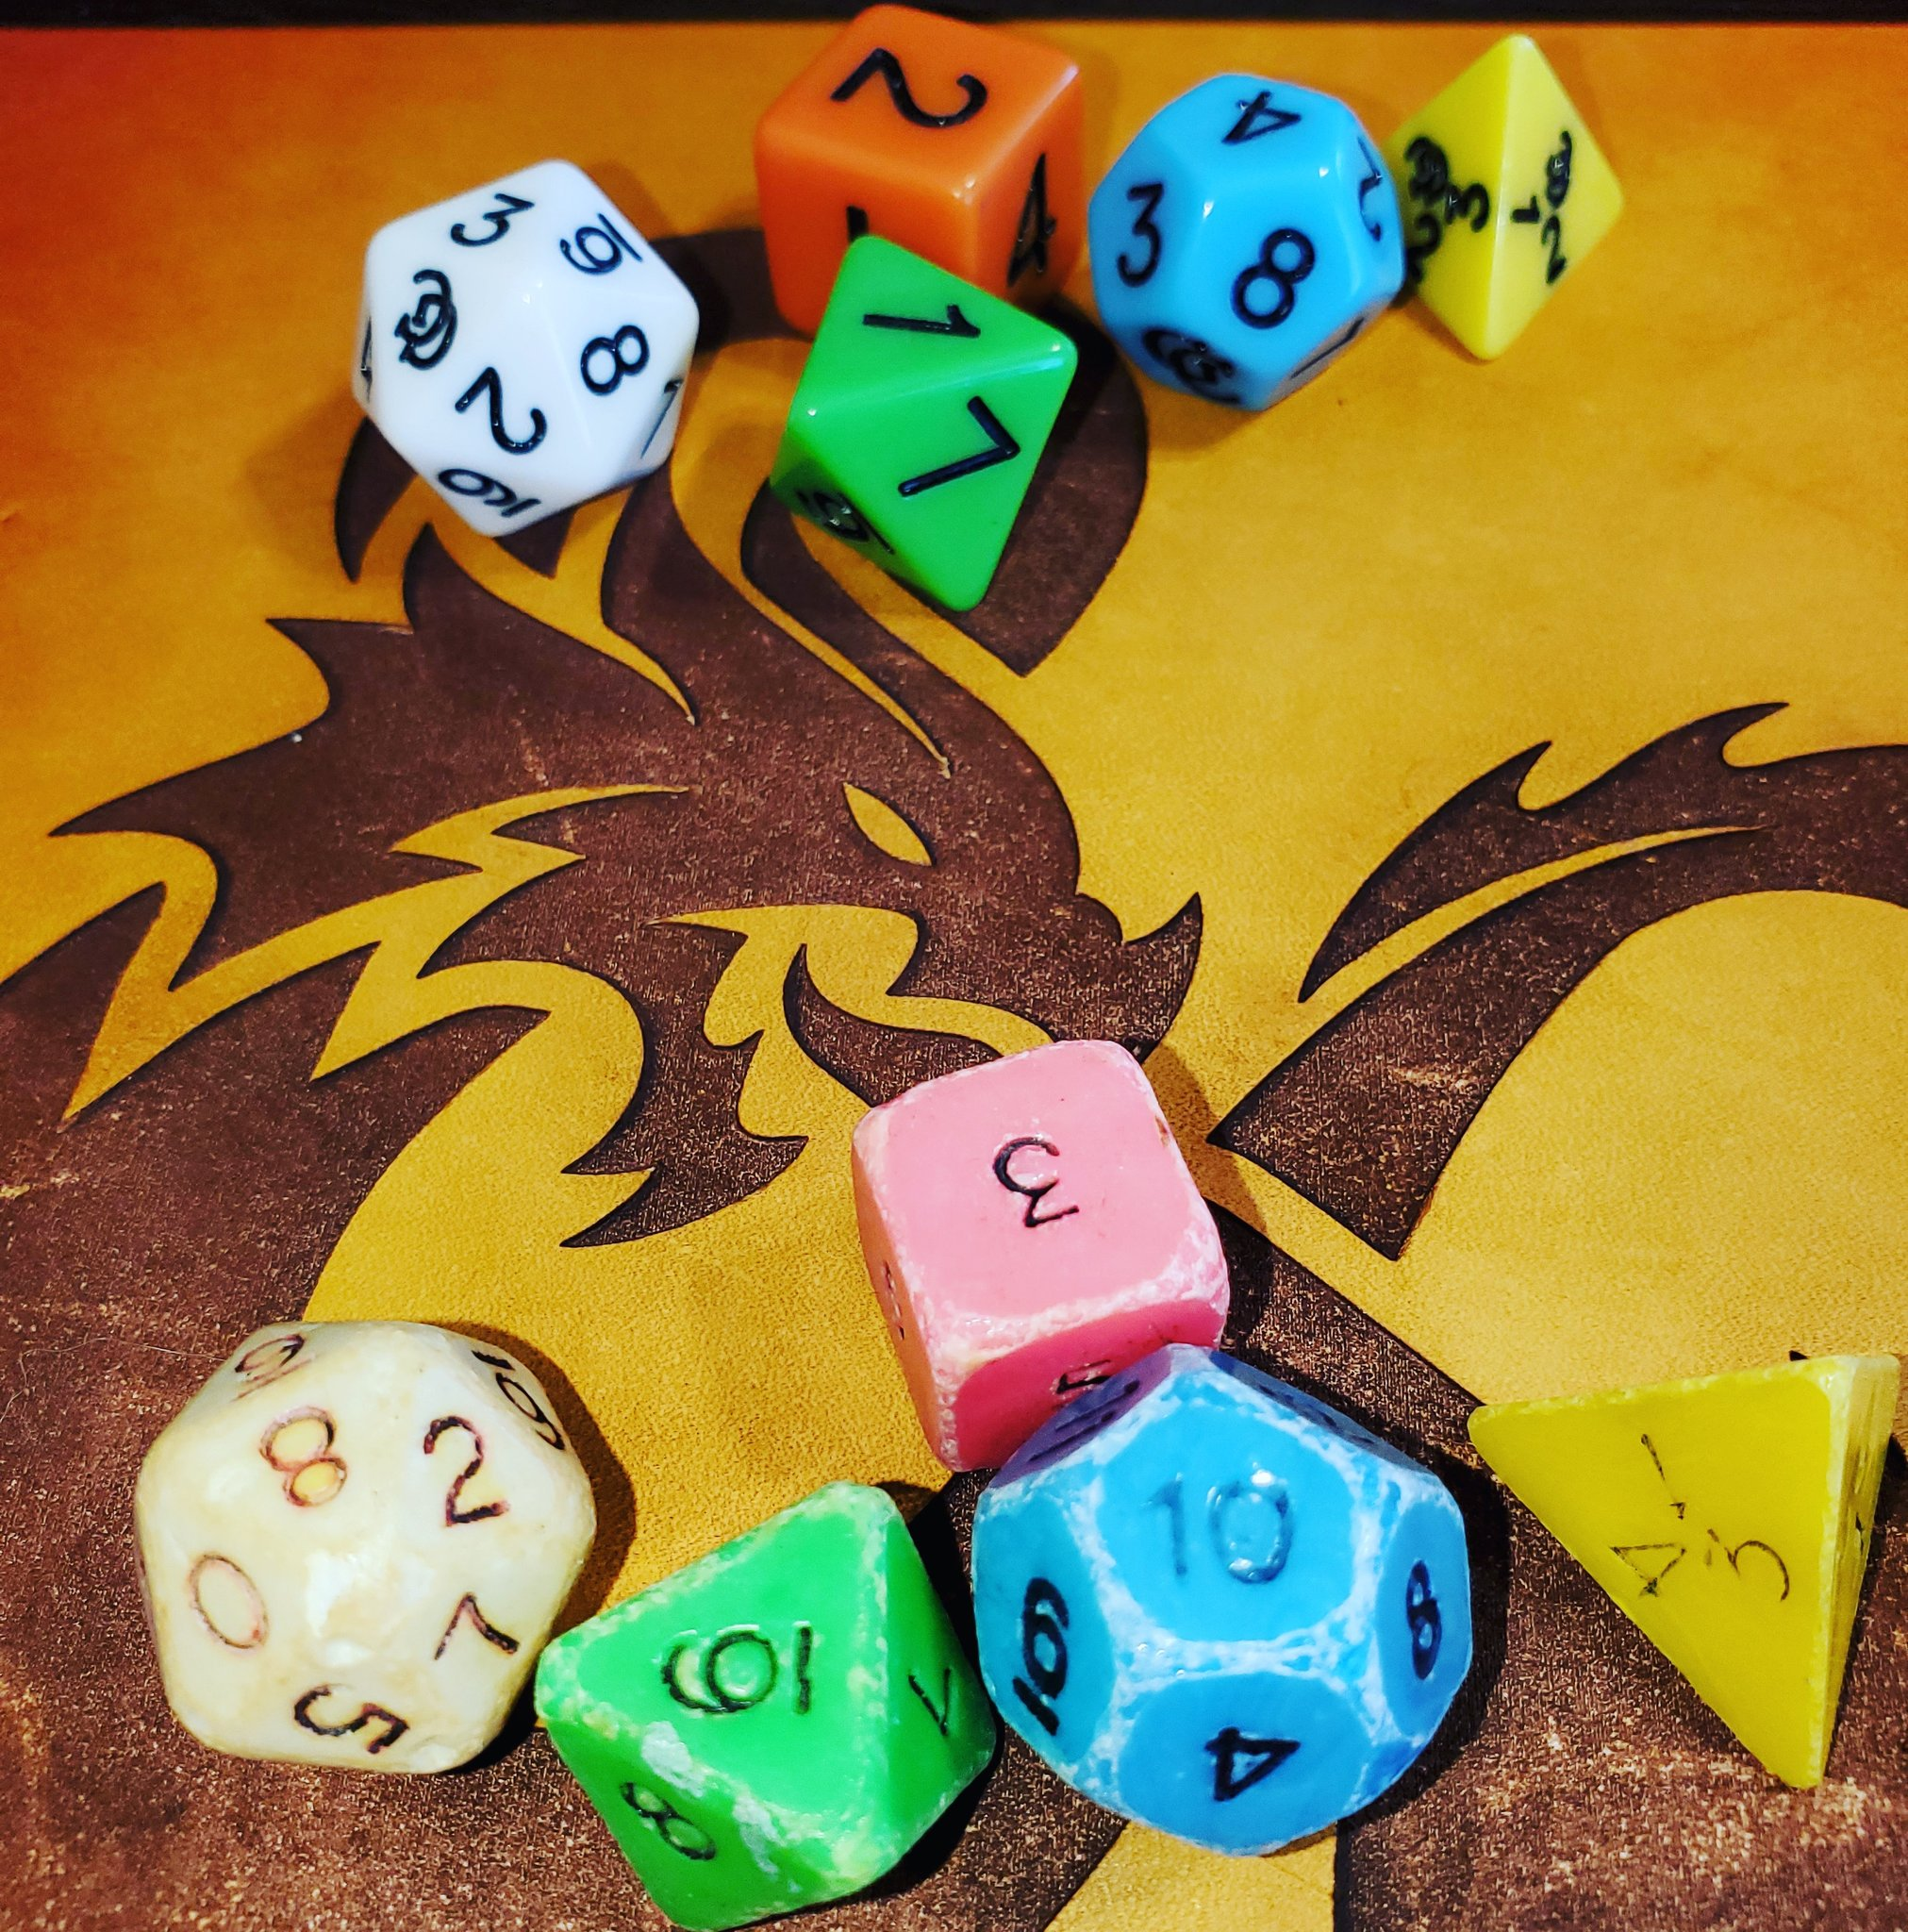 a set of colorful Dungeons & Dragons dice on a table with a dragon on it